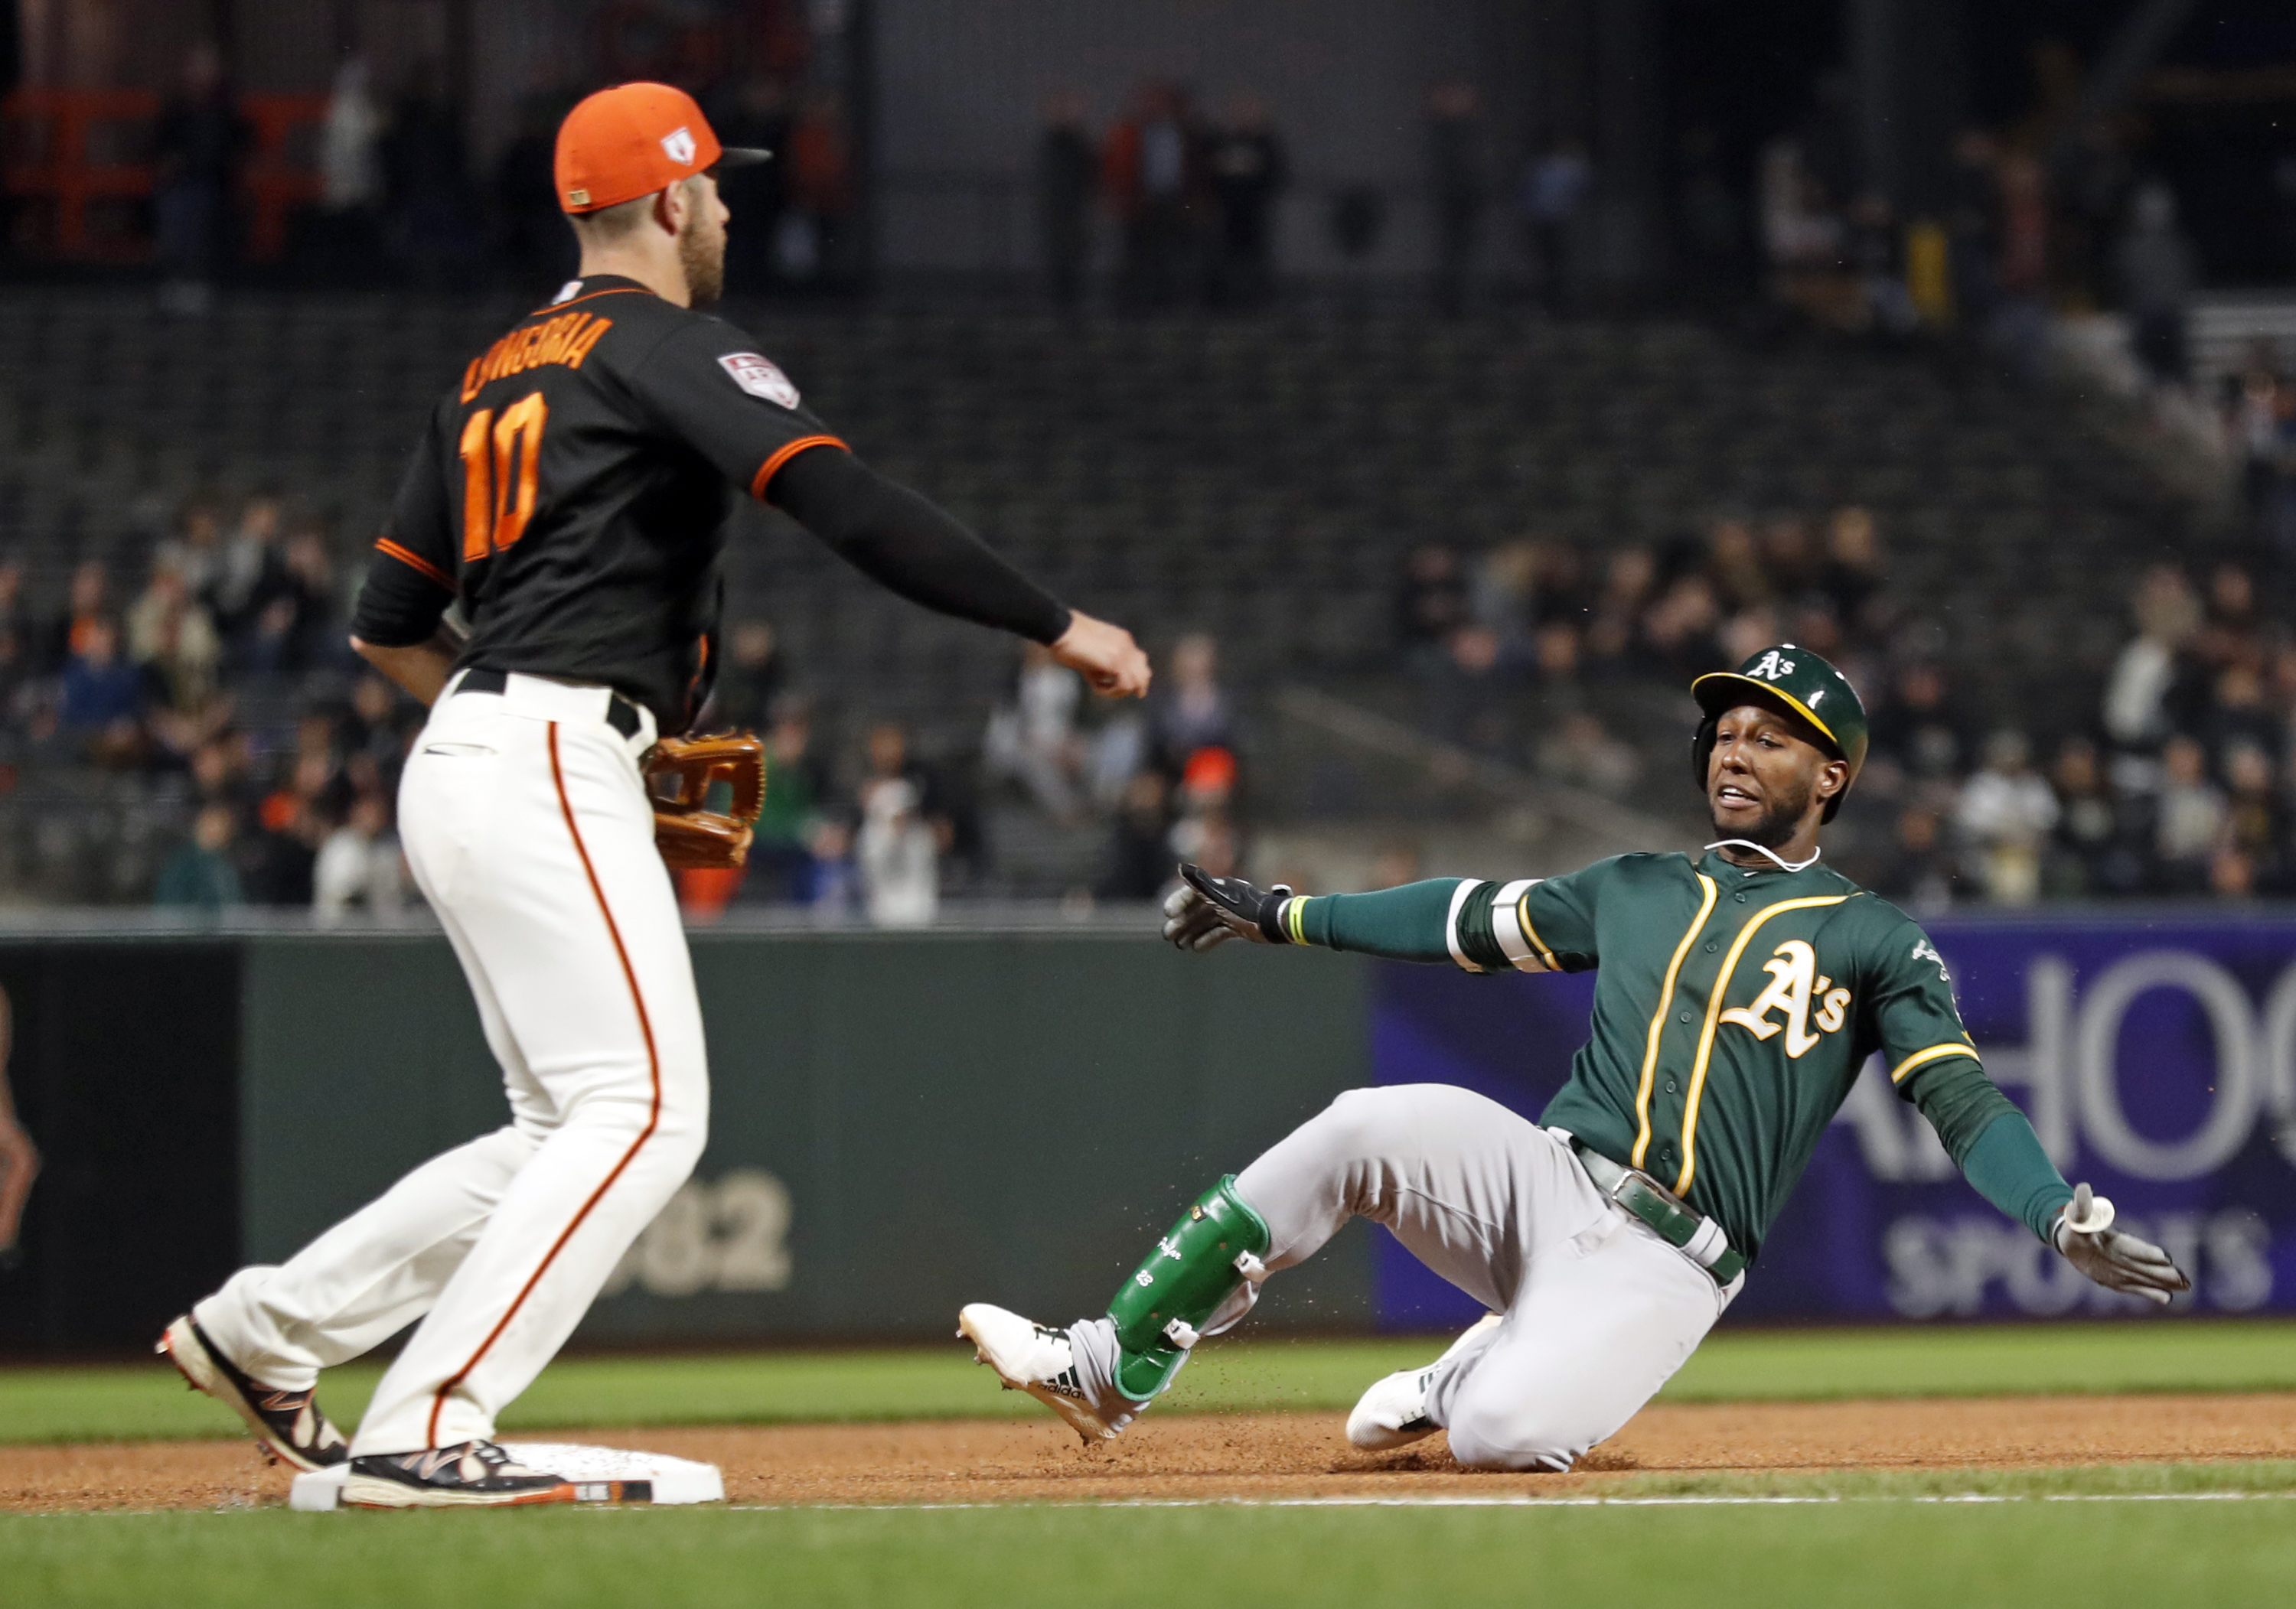 Oakland Athletics' Jurickson Profar slides into third base with a triple as San Francisco Giants' Evan Longoria awaits the throw in 4th inning of Bay Bridge Series game at Oracle Park in San Francisco, Calif., on Tuesday, March 26, 2019.